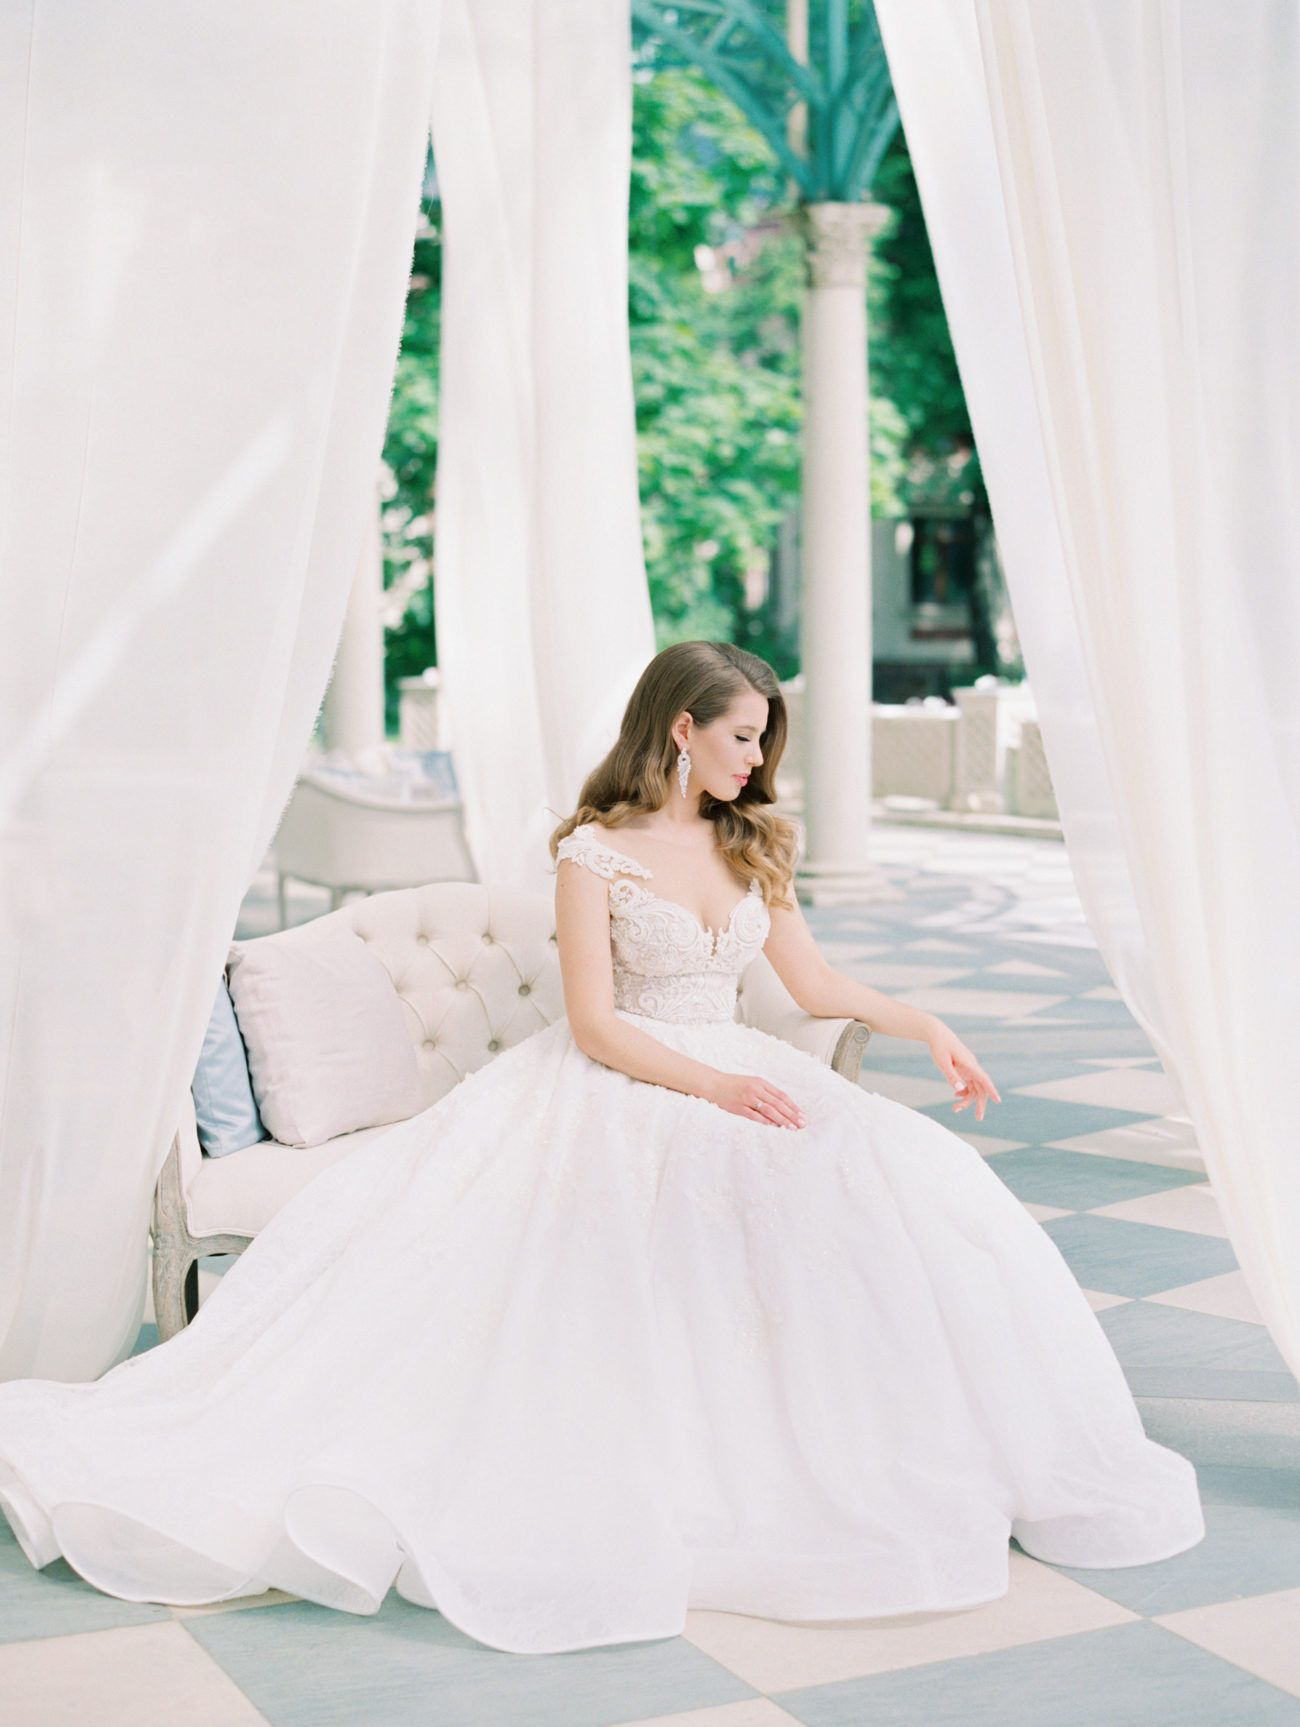 Moscow wedding or inspiration shoot you tell us lovely dream